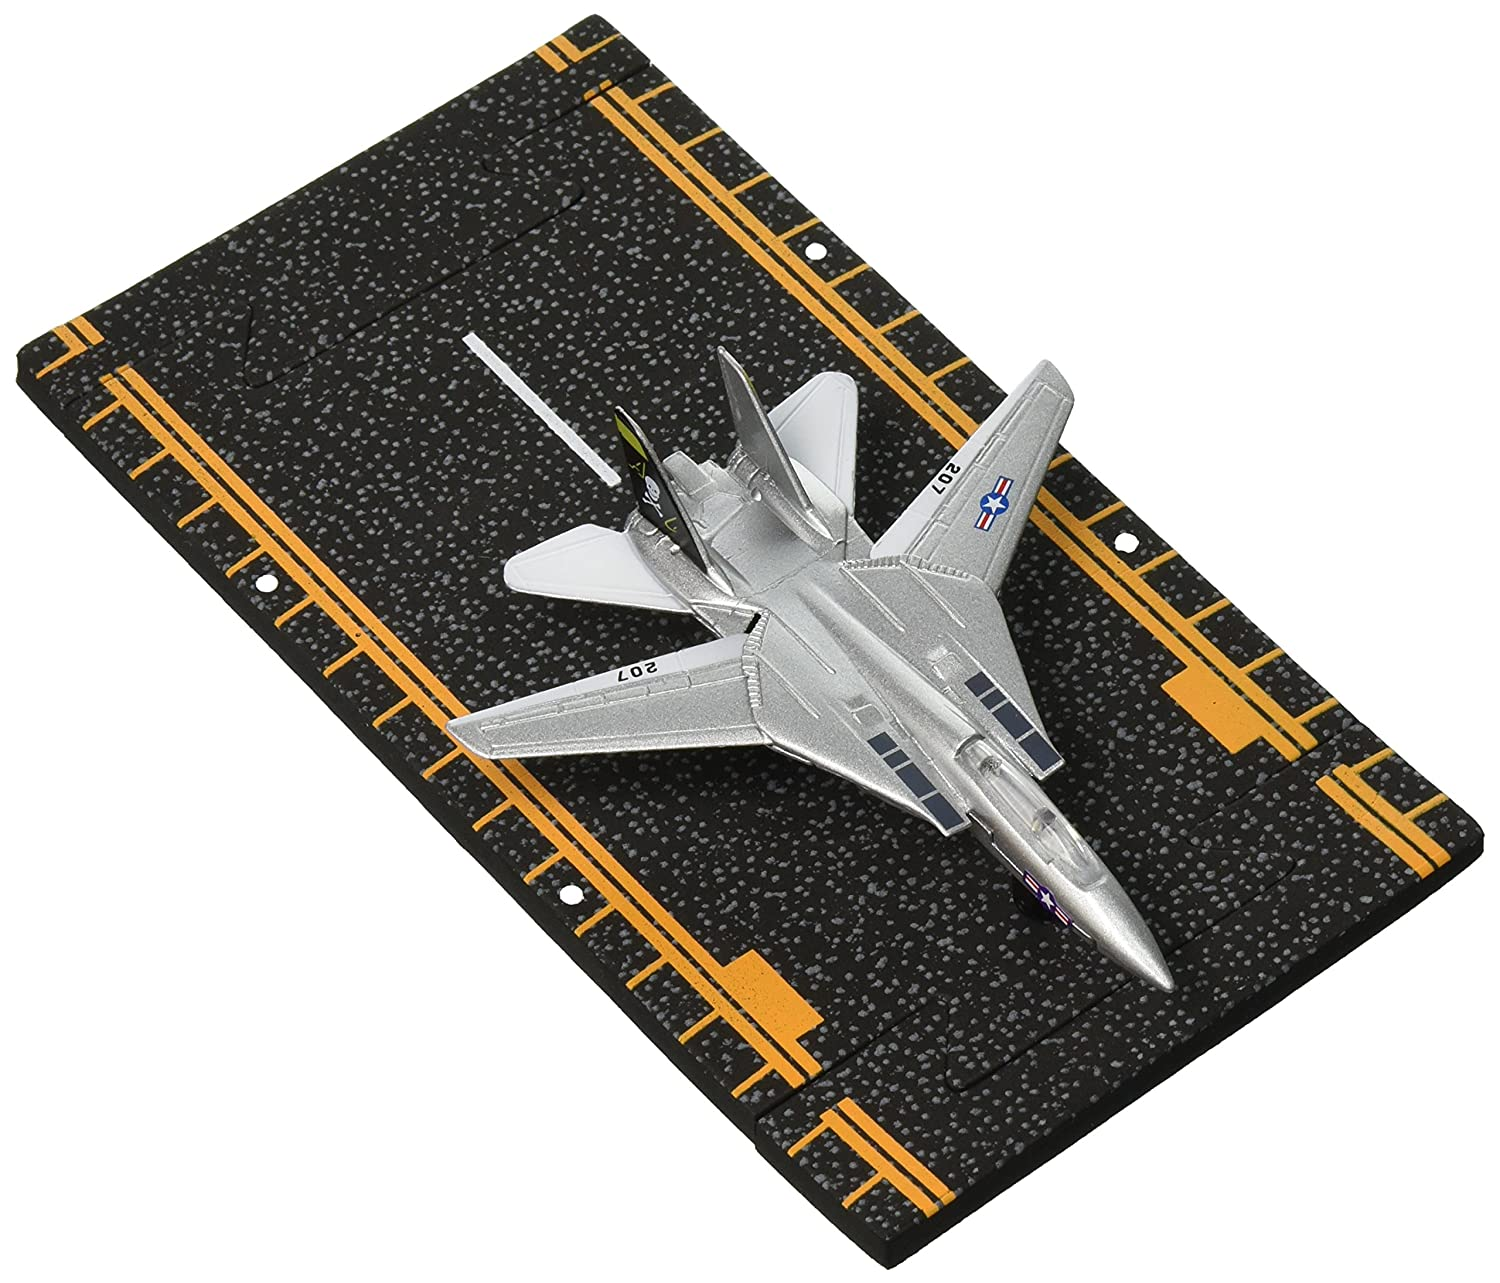 Hot Wings F-14 Tomcat Jet (Jolly Rodgers) With Connectible Runway, Silver Just Think Toys 14126